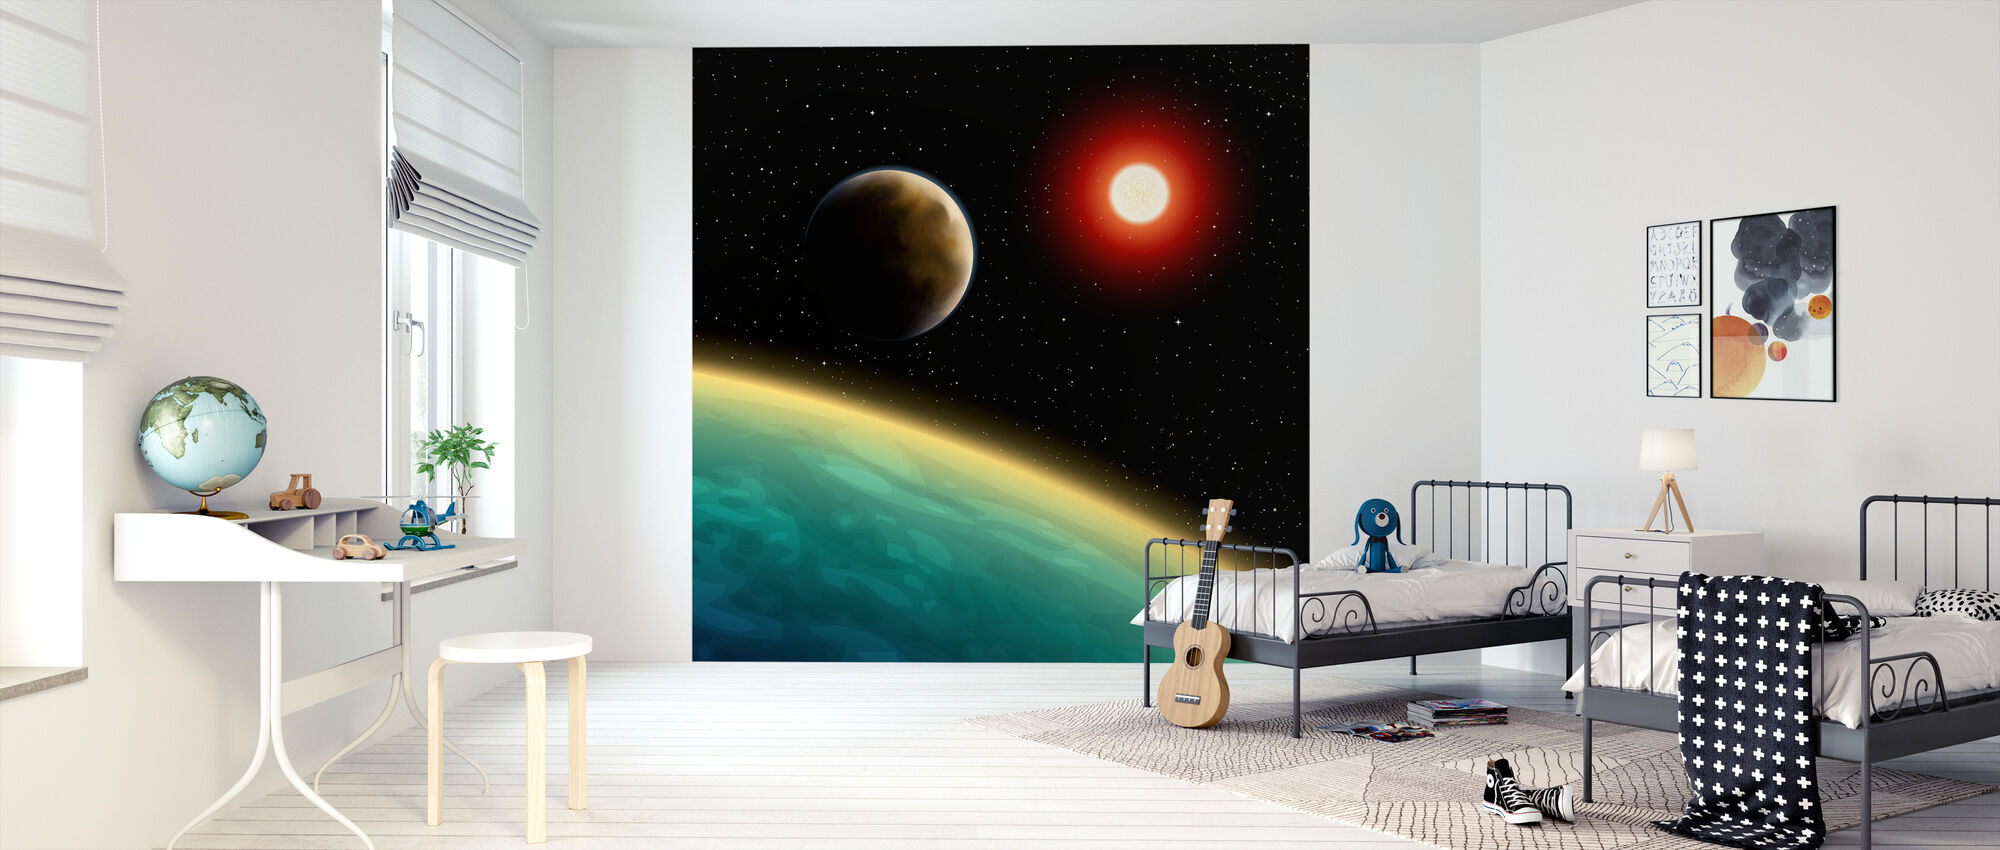 Starry Cosmos - Wallpaper - Kids Room